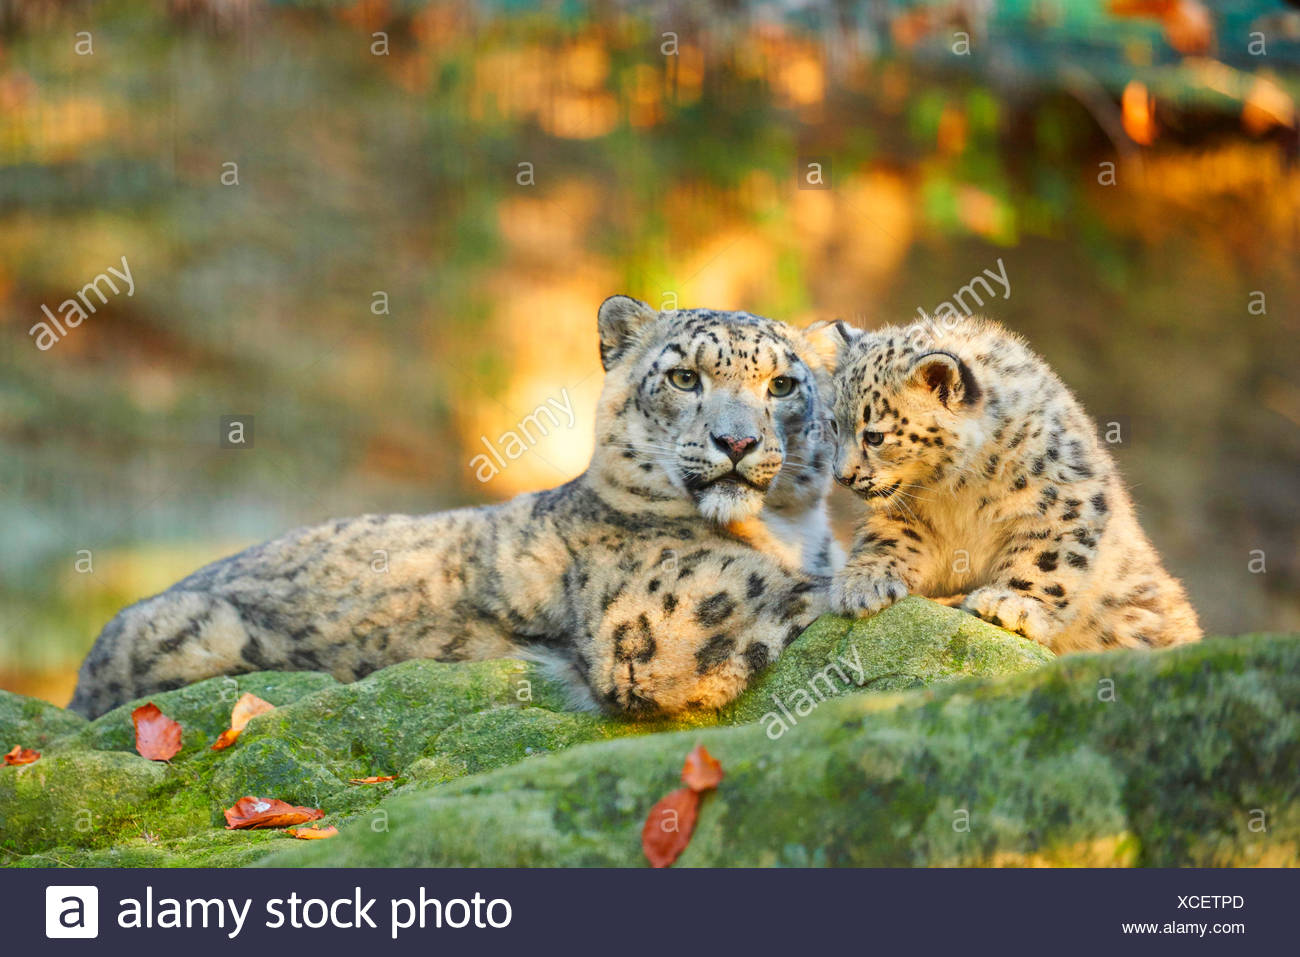 snow leopard (Uncia uncia, Panthera uncia), leopardesses lying with one youngster on a mossy rock - Stock Image